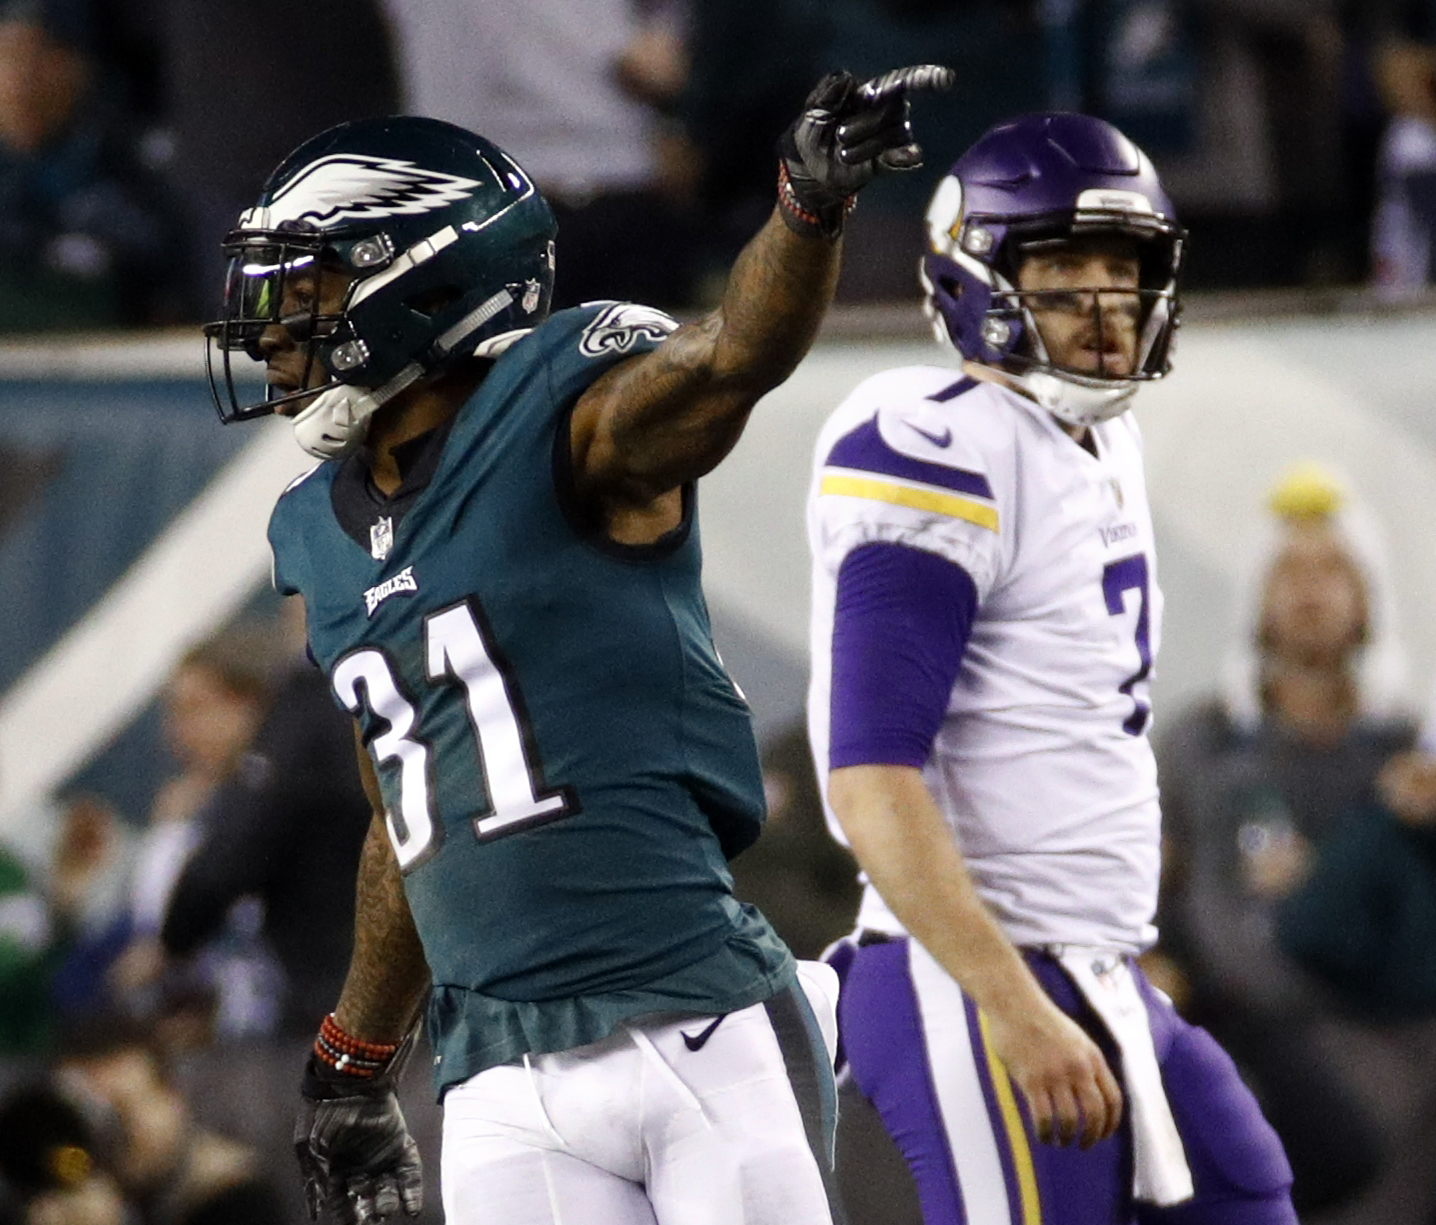 <div class='meta'><div class='origin-logo' data-origin='AP'></div><span class='caption-text' data-credit='AP Photo/Patrick Semansky'>Philadelphia Eagles' Jalen Mills celebrates a fumble recovery in front of Minnesota Vikings' Case Keenum during the first half.</span></div>